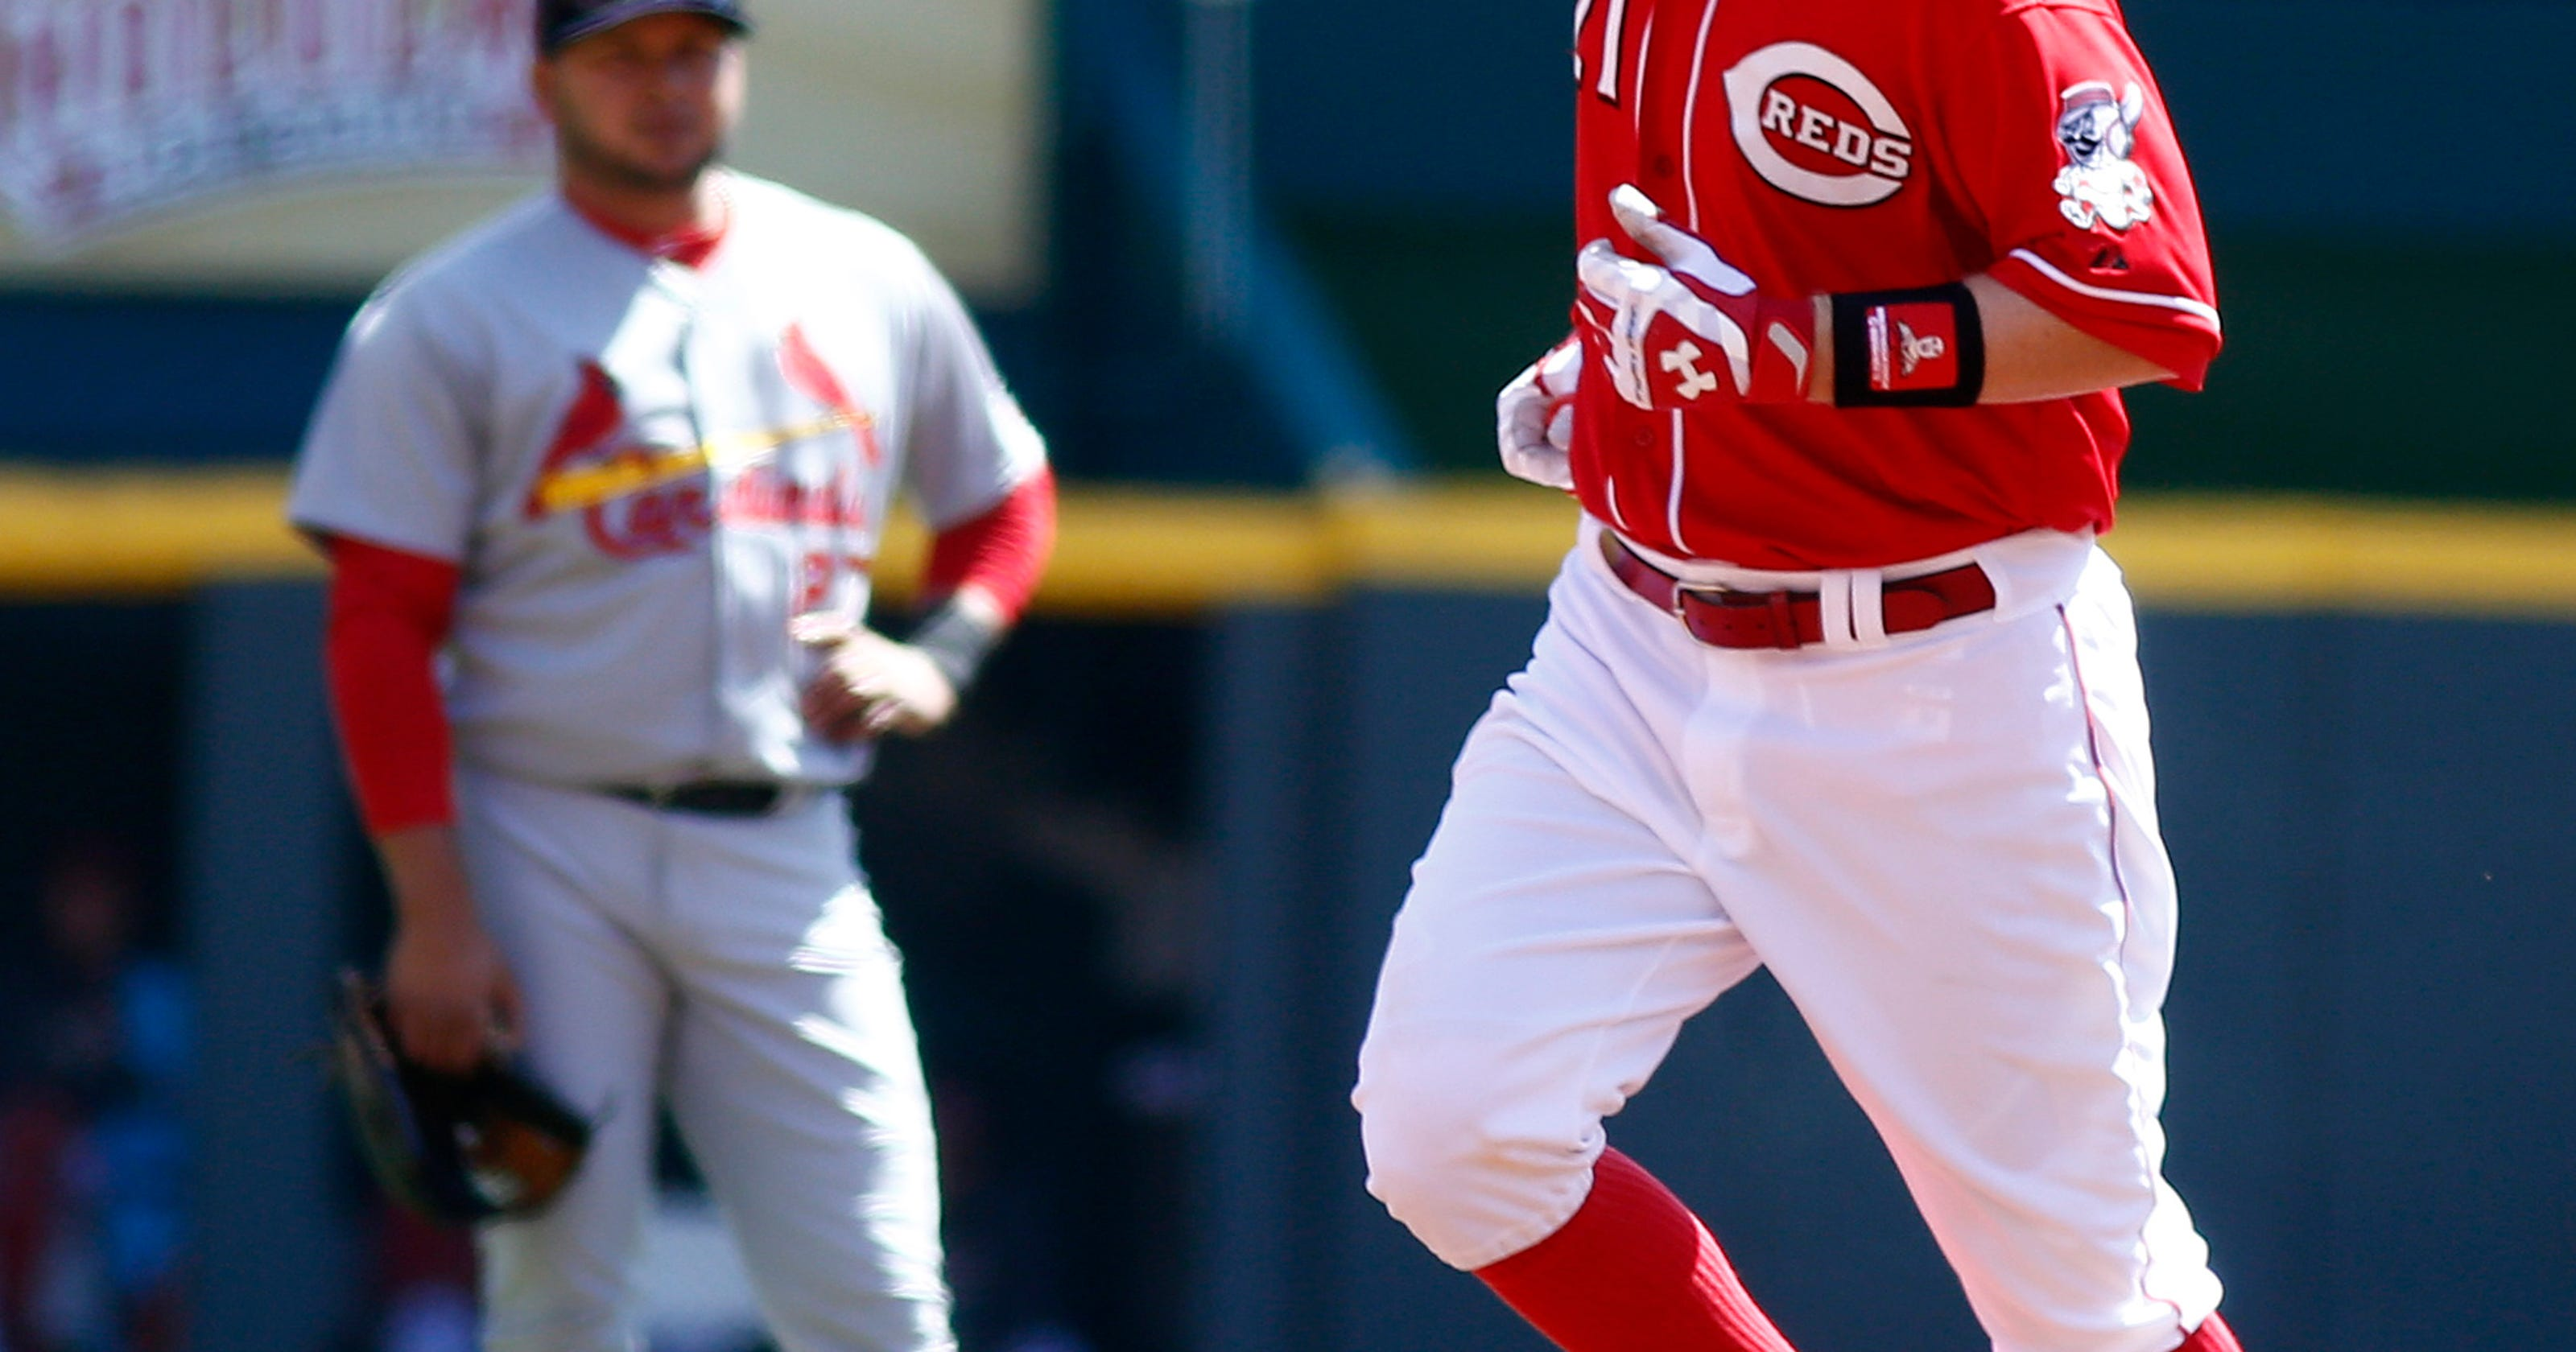 Reds fall to Cards 4-1 for 1st loss of season